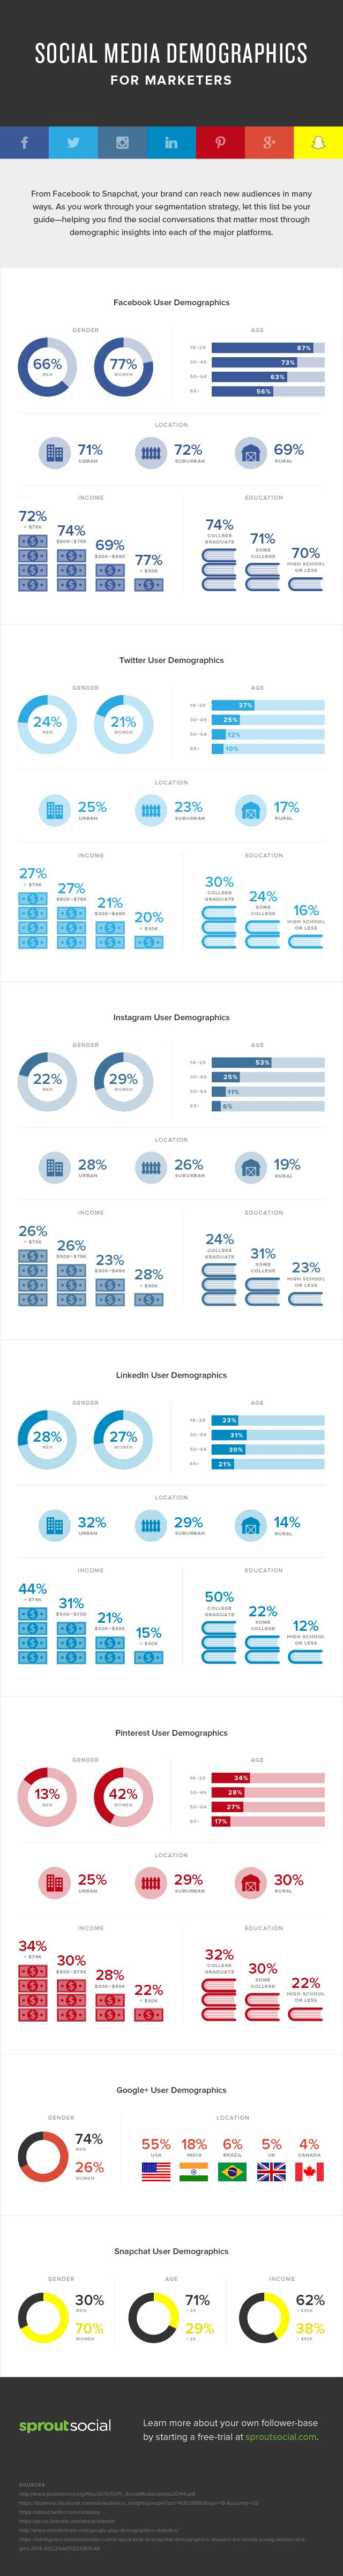 Social Media Demographics for Marketers to Inform a Better Segmentation Strategy